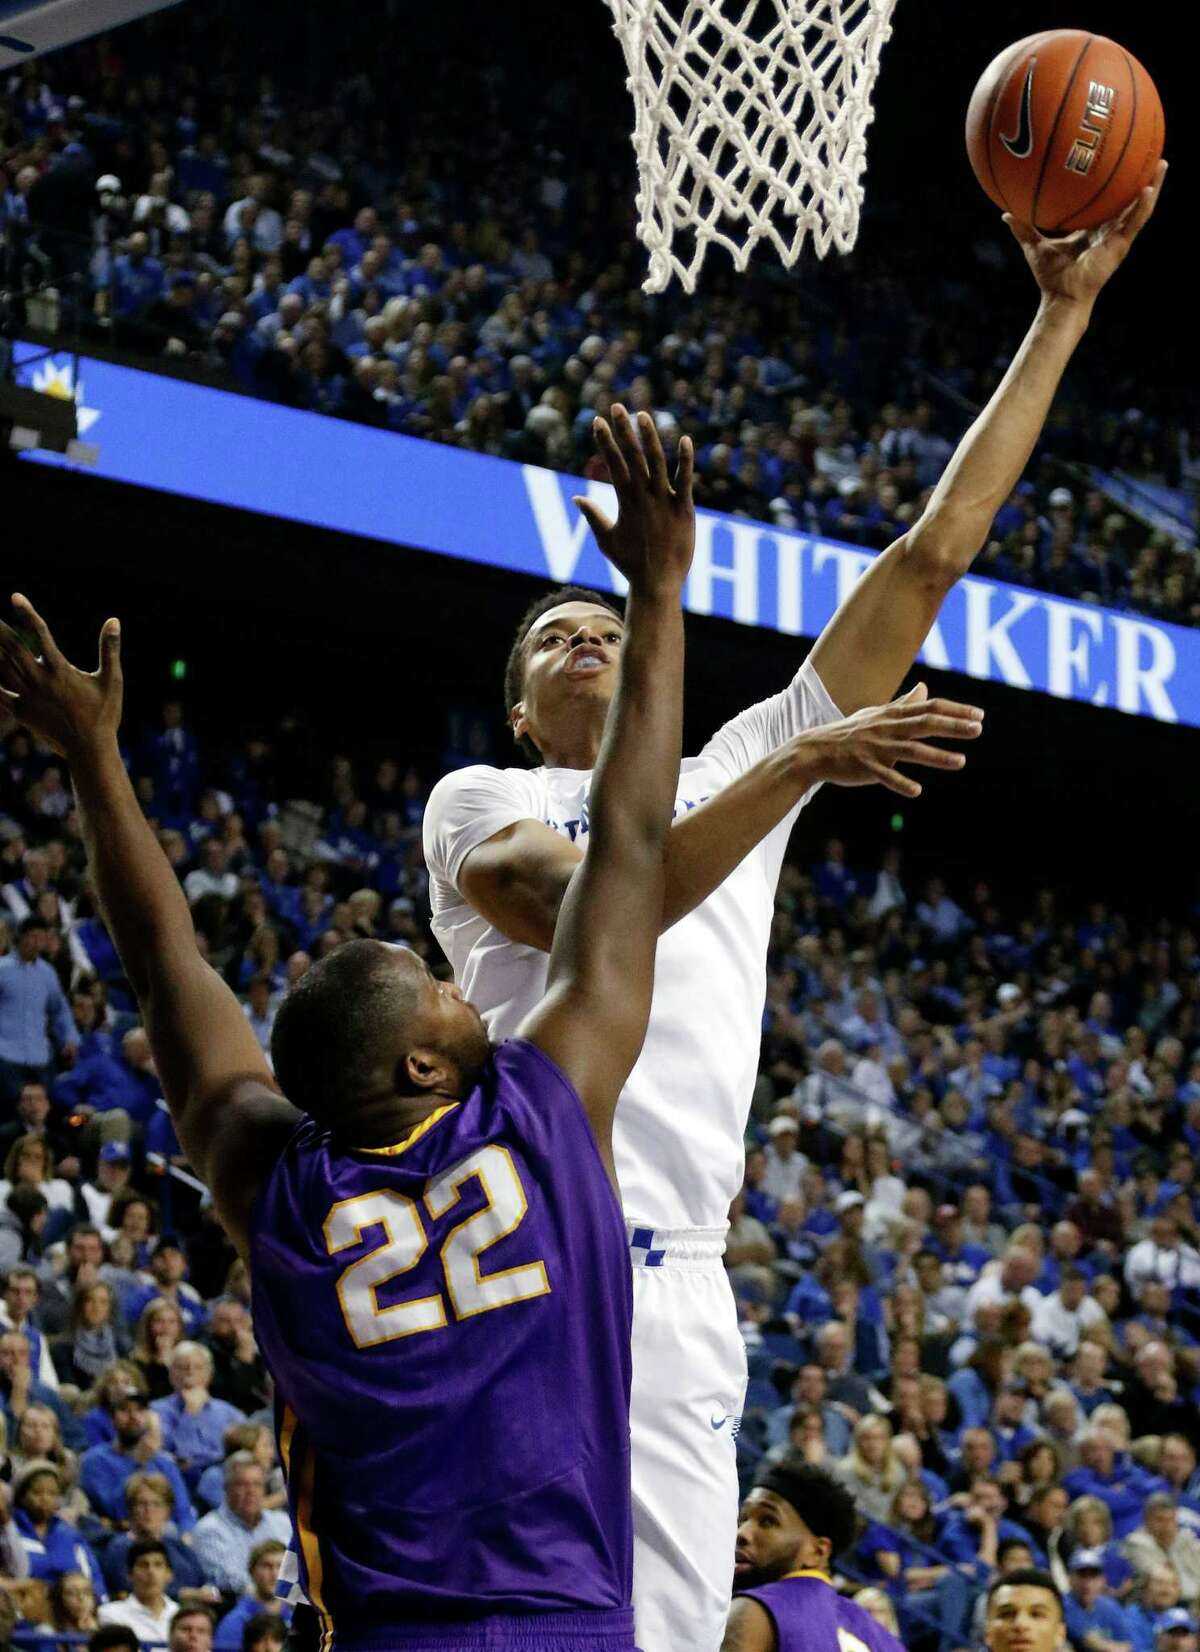 Kentucky's Skal Labissiere, right, shoots over the defense of Albany's Richard Peters during the second half of an NCAA college basketball game Friday, Nov. 13, 2015, in Lexington, Ky. Kentucky won 78-65. (AP Photo/James Crisp) ORG XMIT: KYJC111